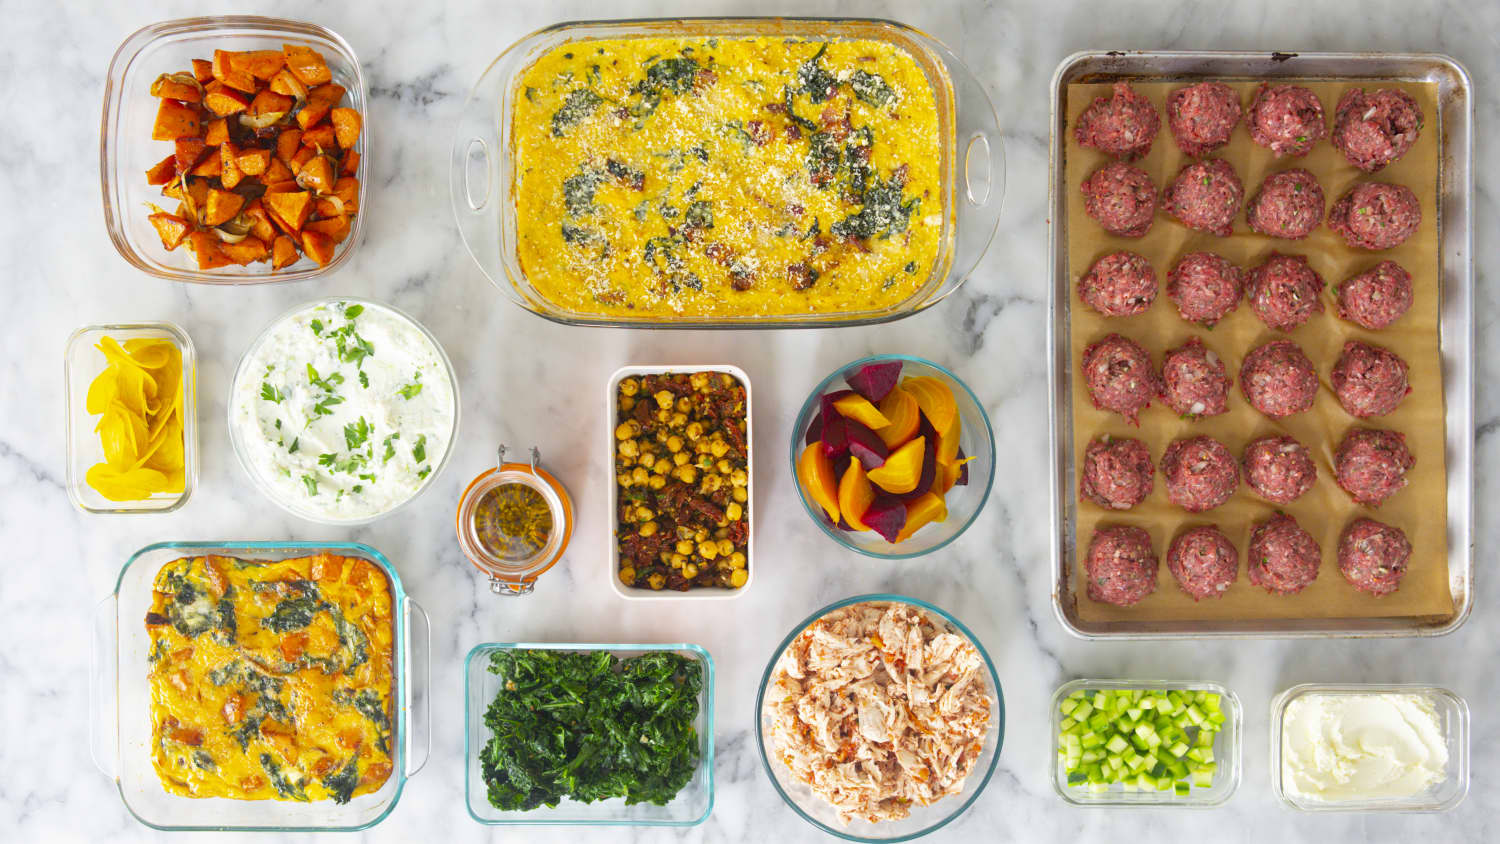 Meal Prep Plan: How I Prep a Week of Gluten-Free Meals in Just 2 Hours